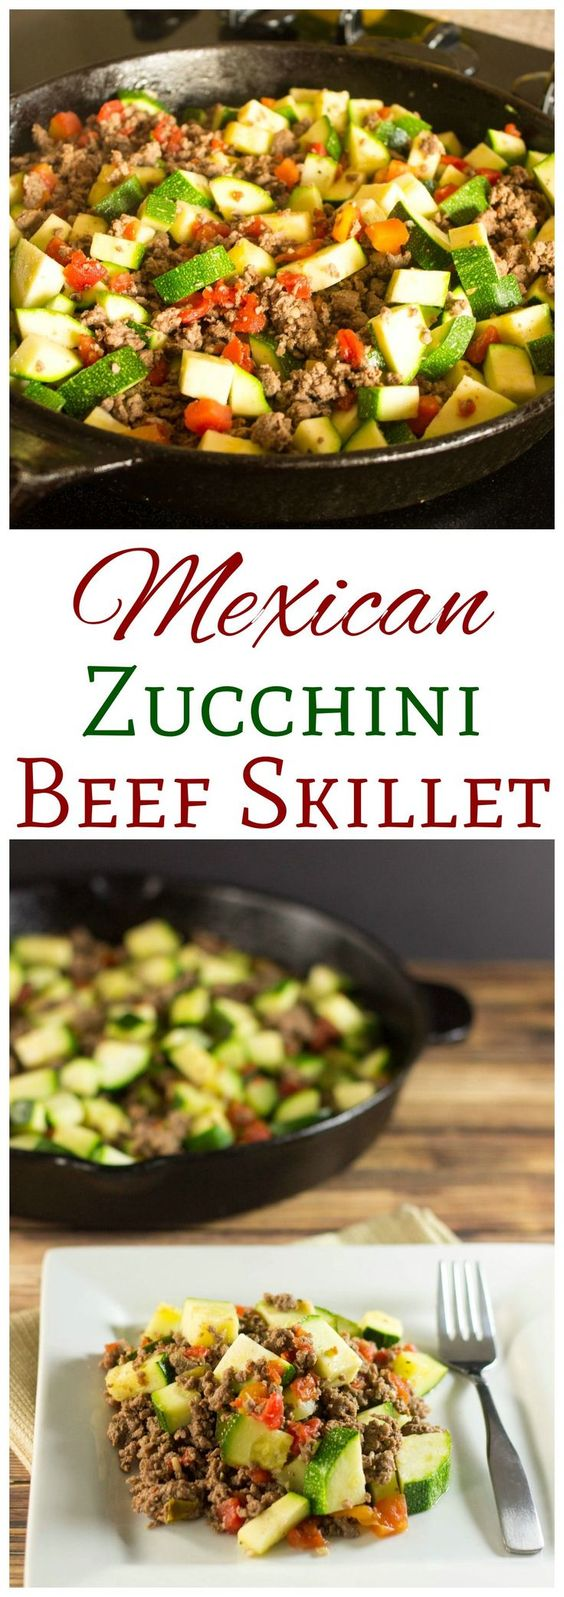 Skillets summer and ground beef recipes on pinterest for Different meal ideas for ground beef